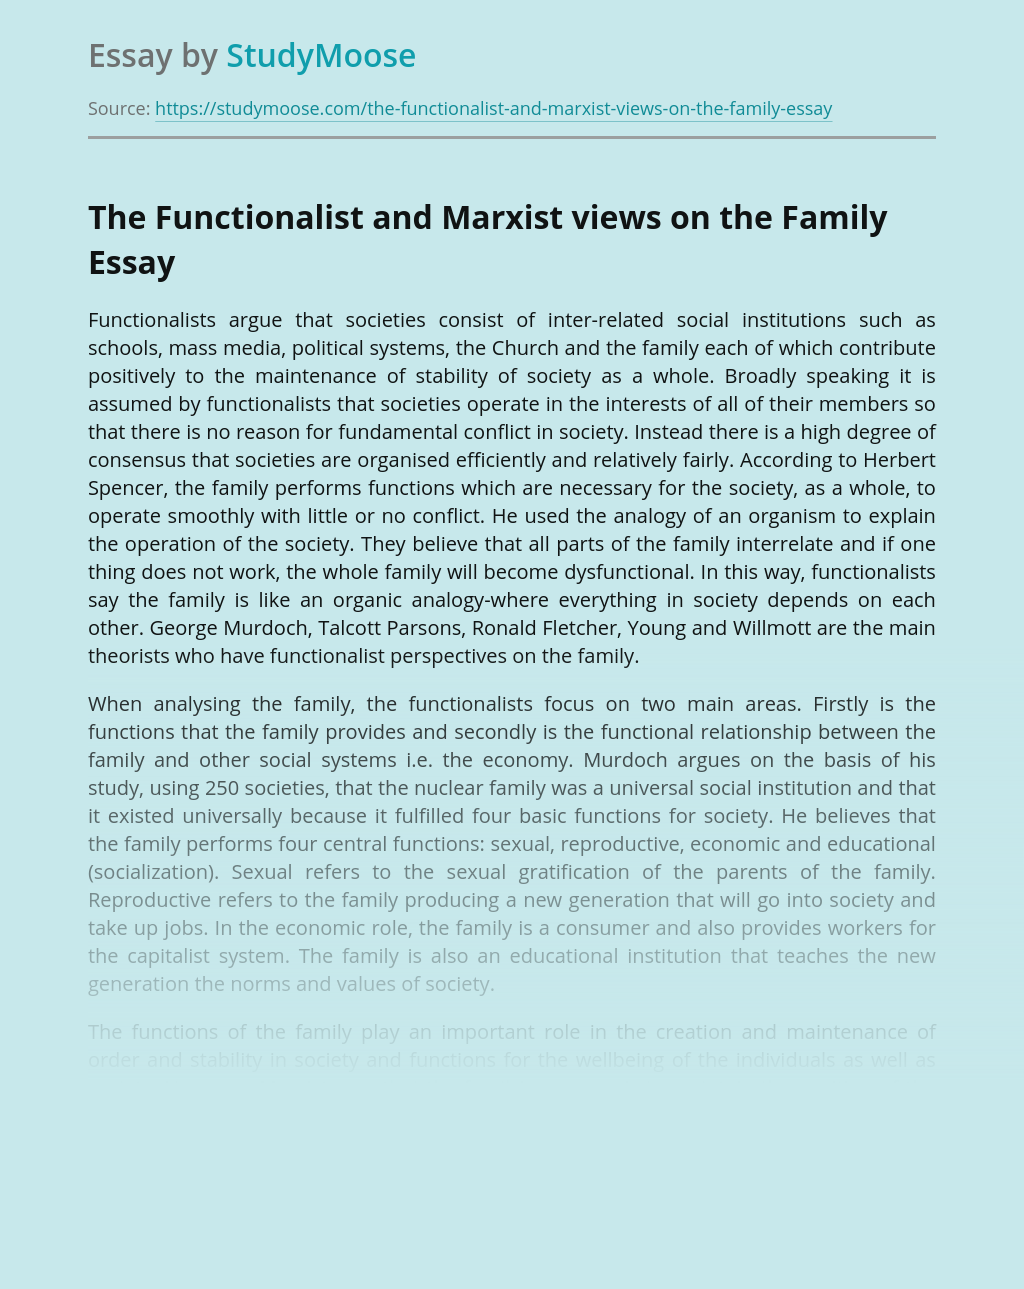 The Functionalist and Marxist views on the Family